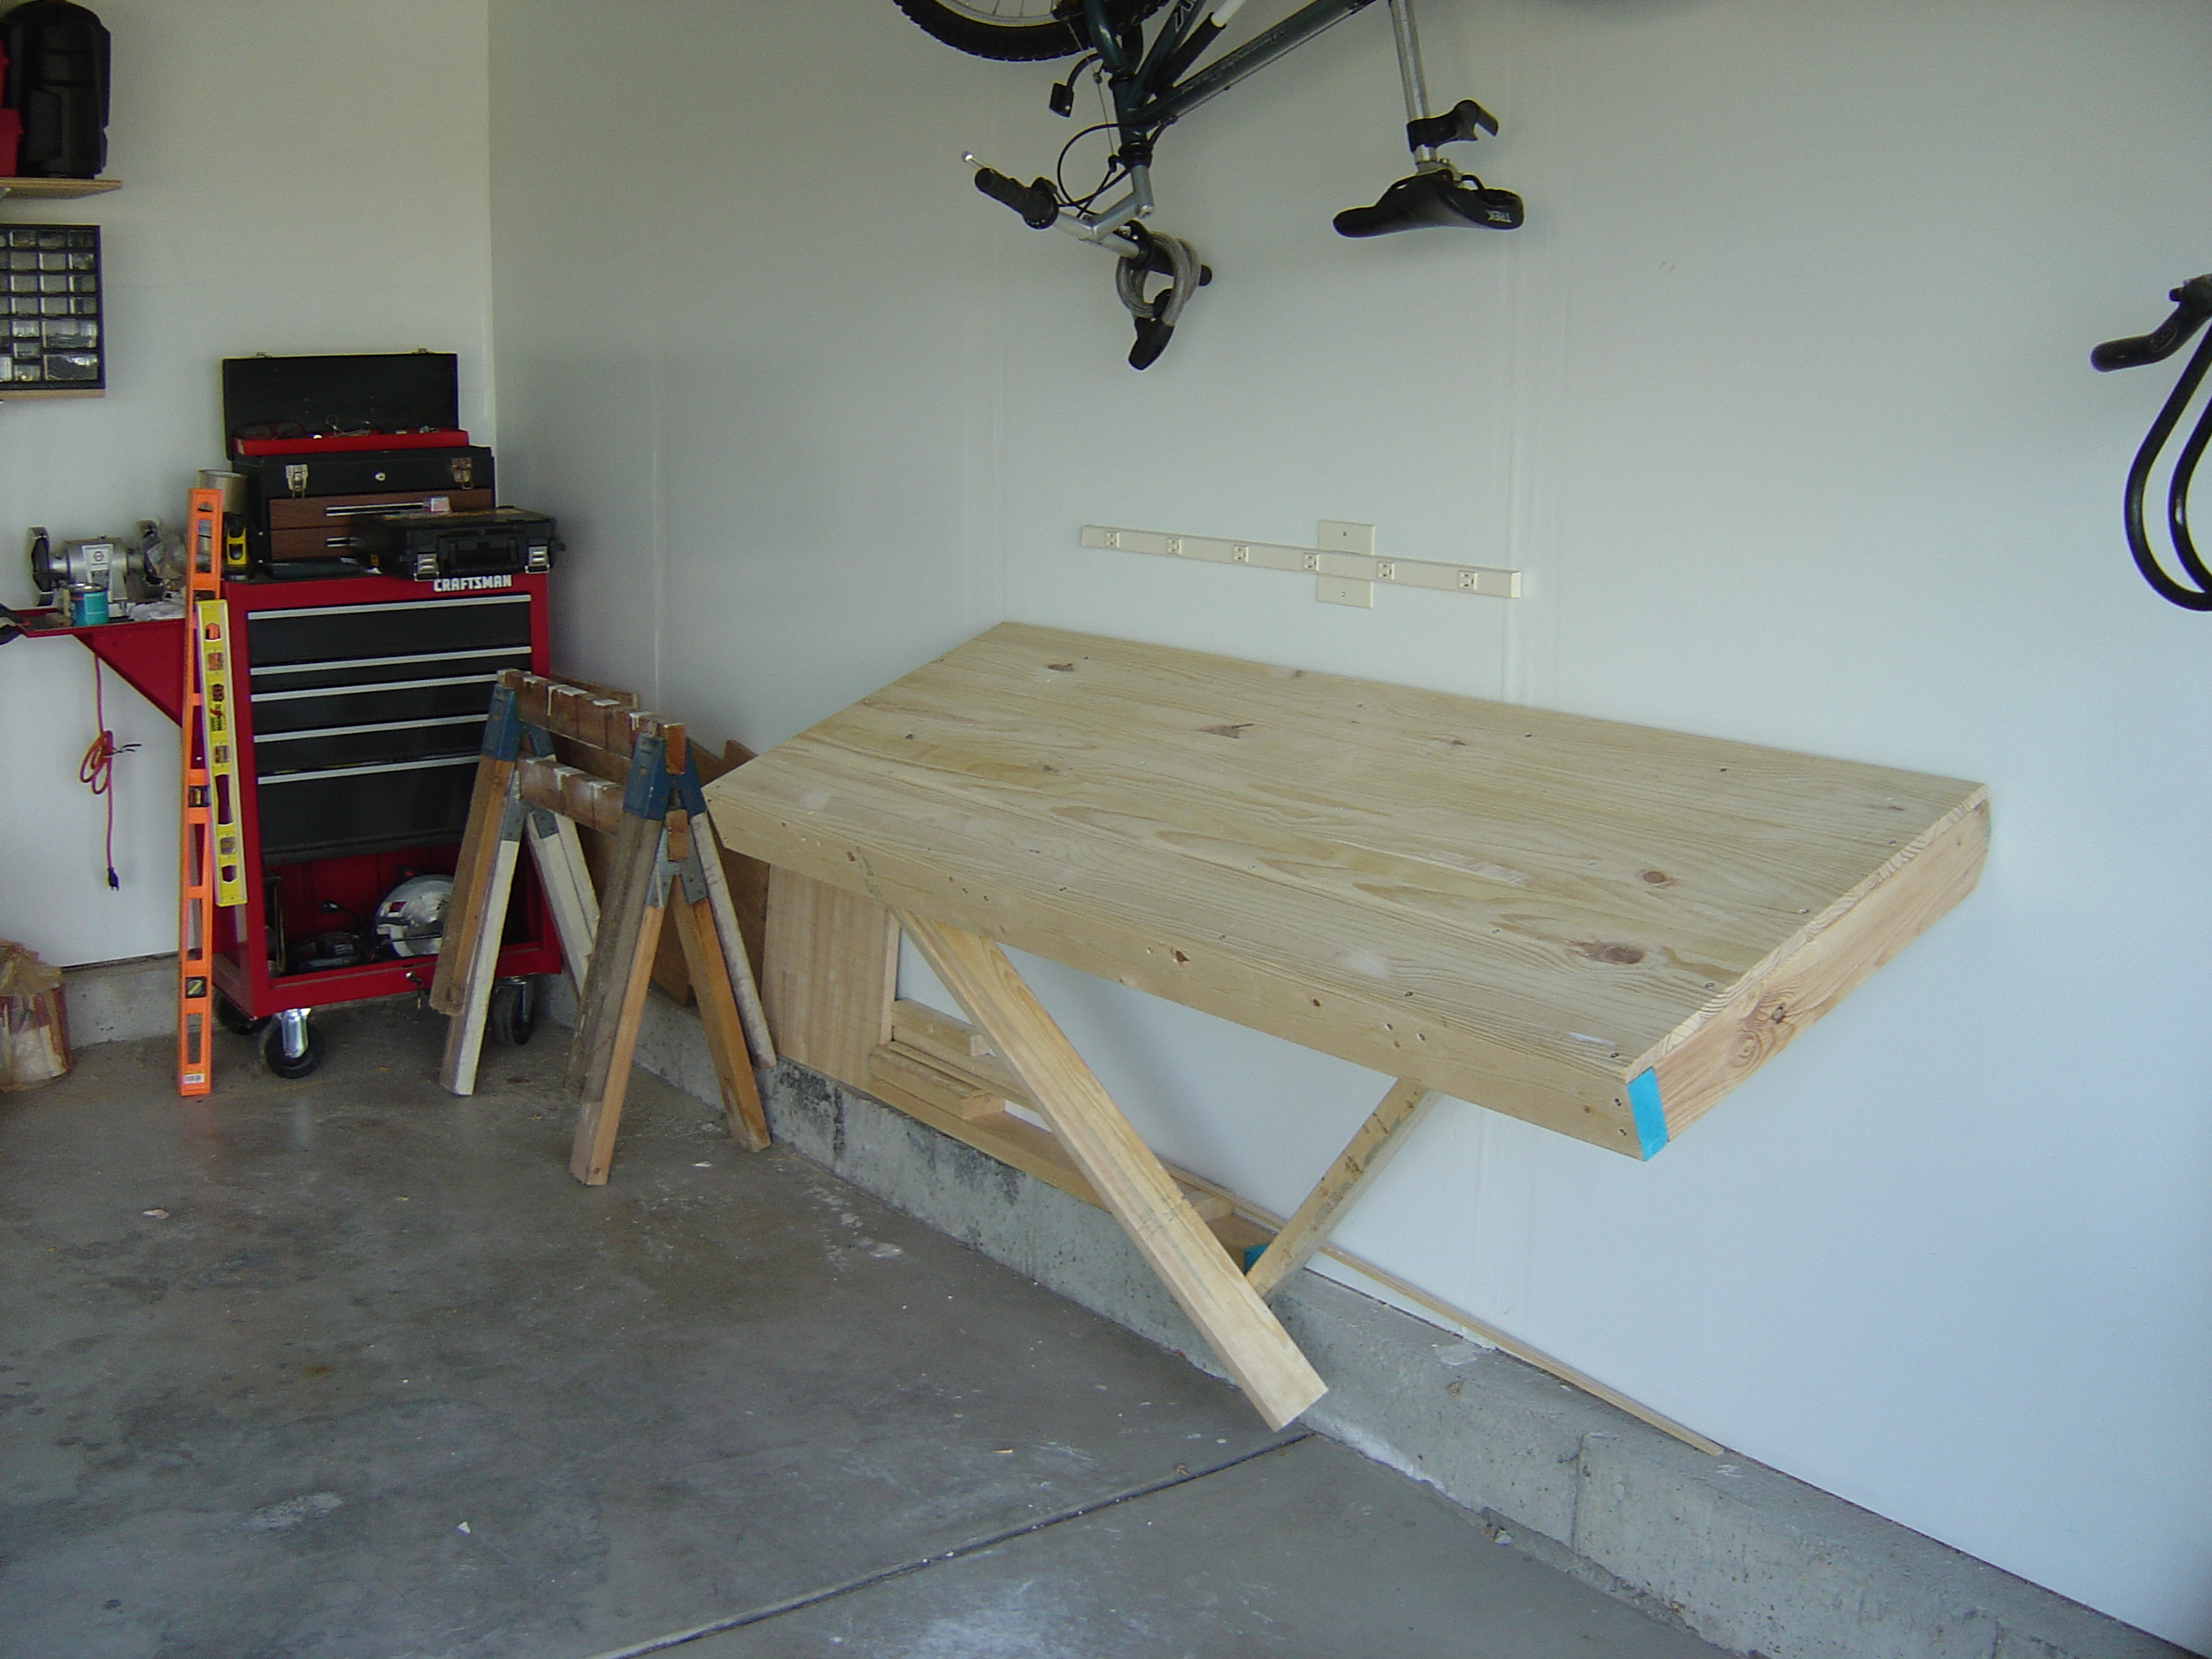 Garage Workbench 2x4 Images Galleries With A Bite